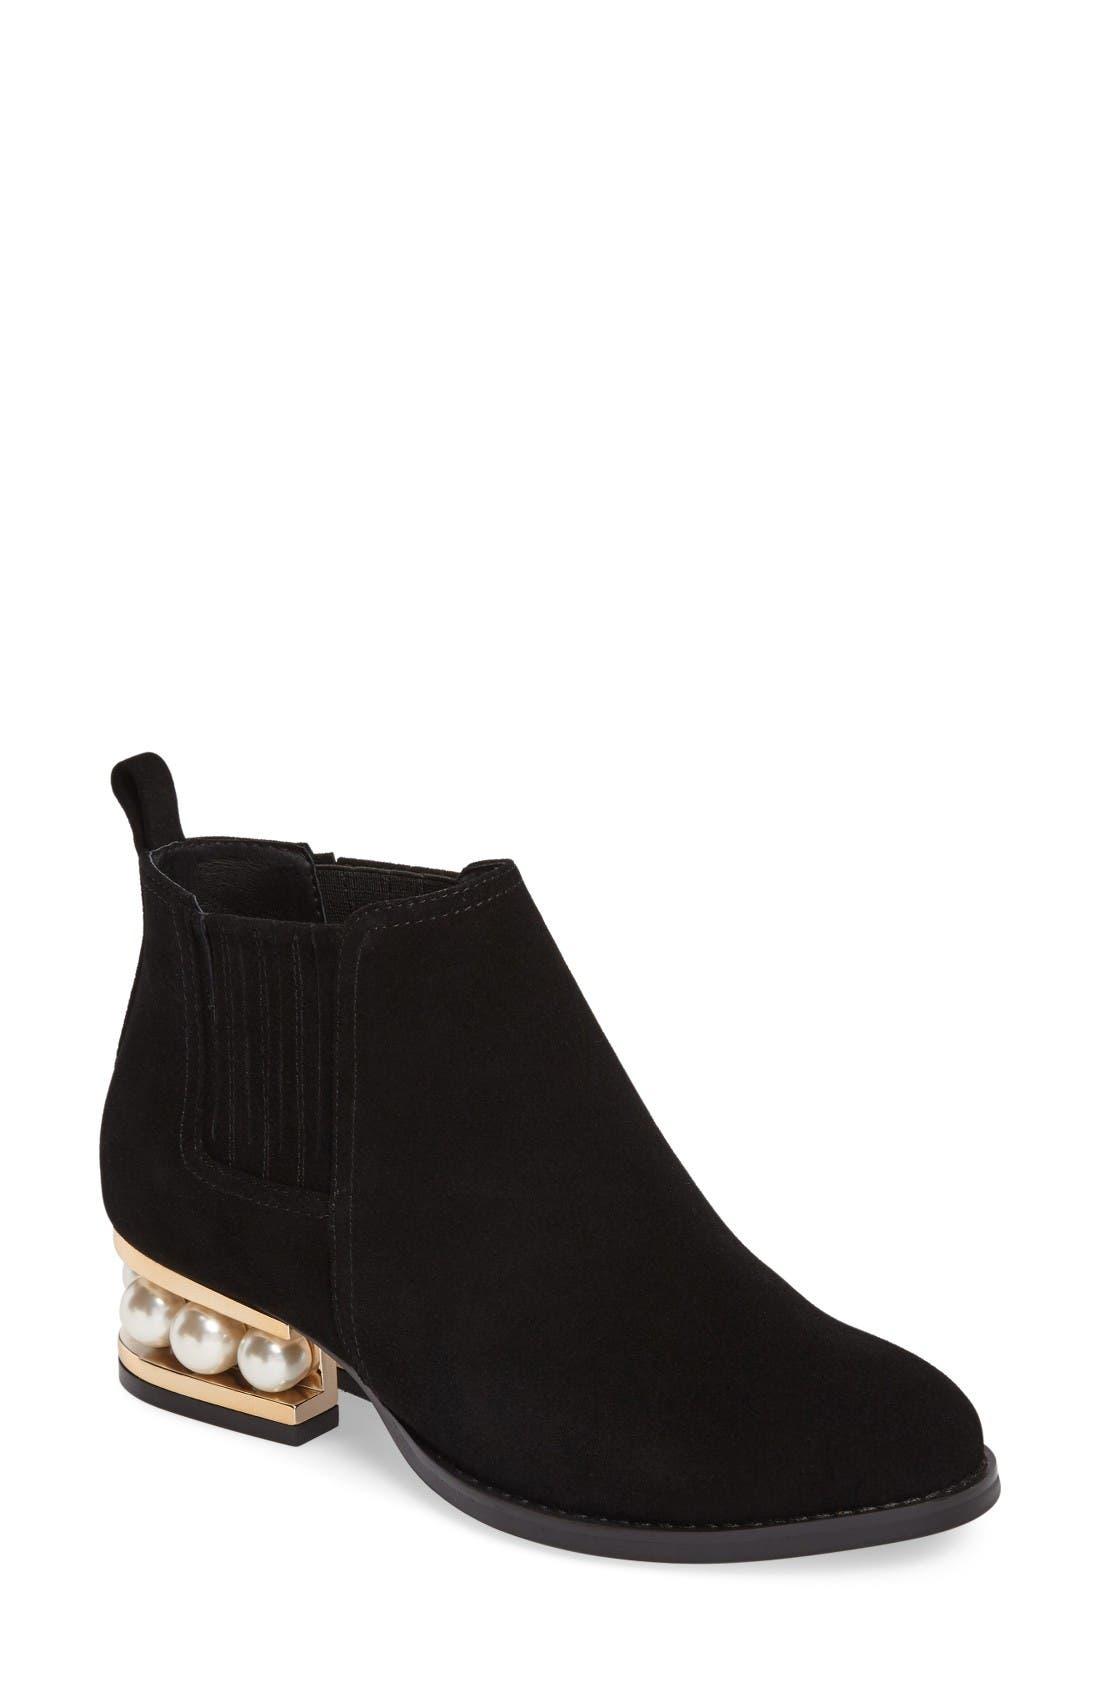 Main Image - Jeffrey Campbell Warr-MP Pearly Orbed Chelsea Boot (Women)